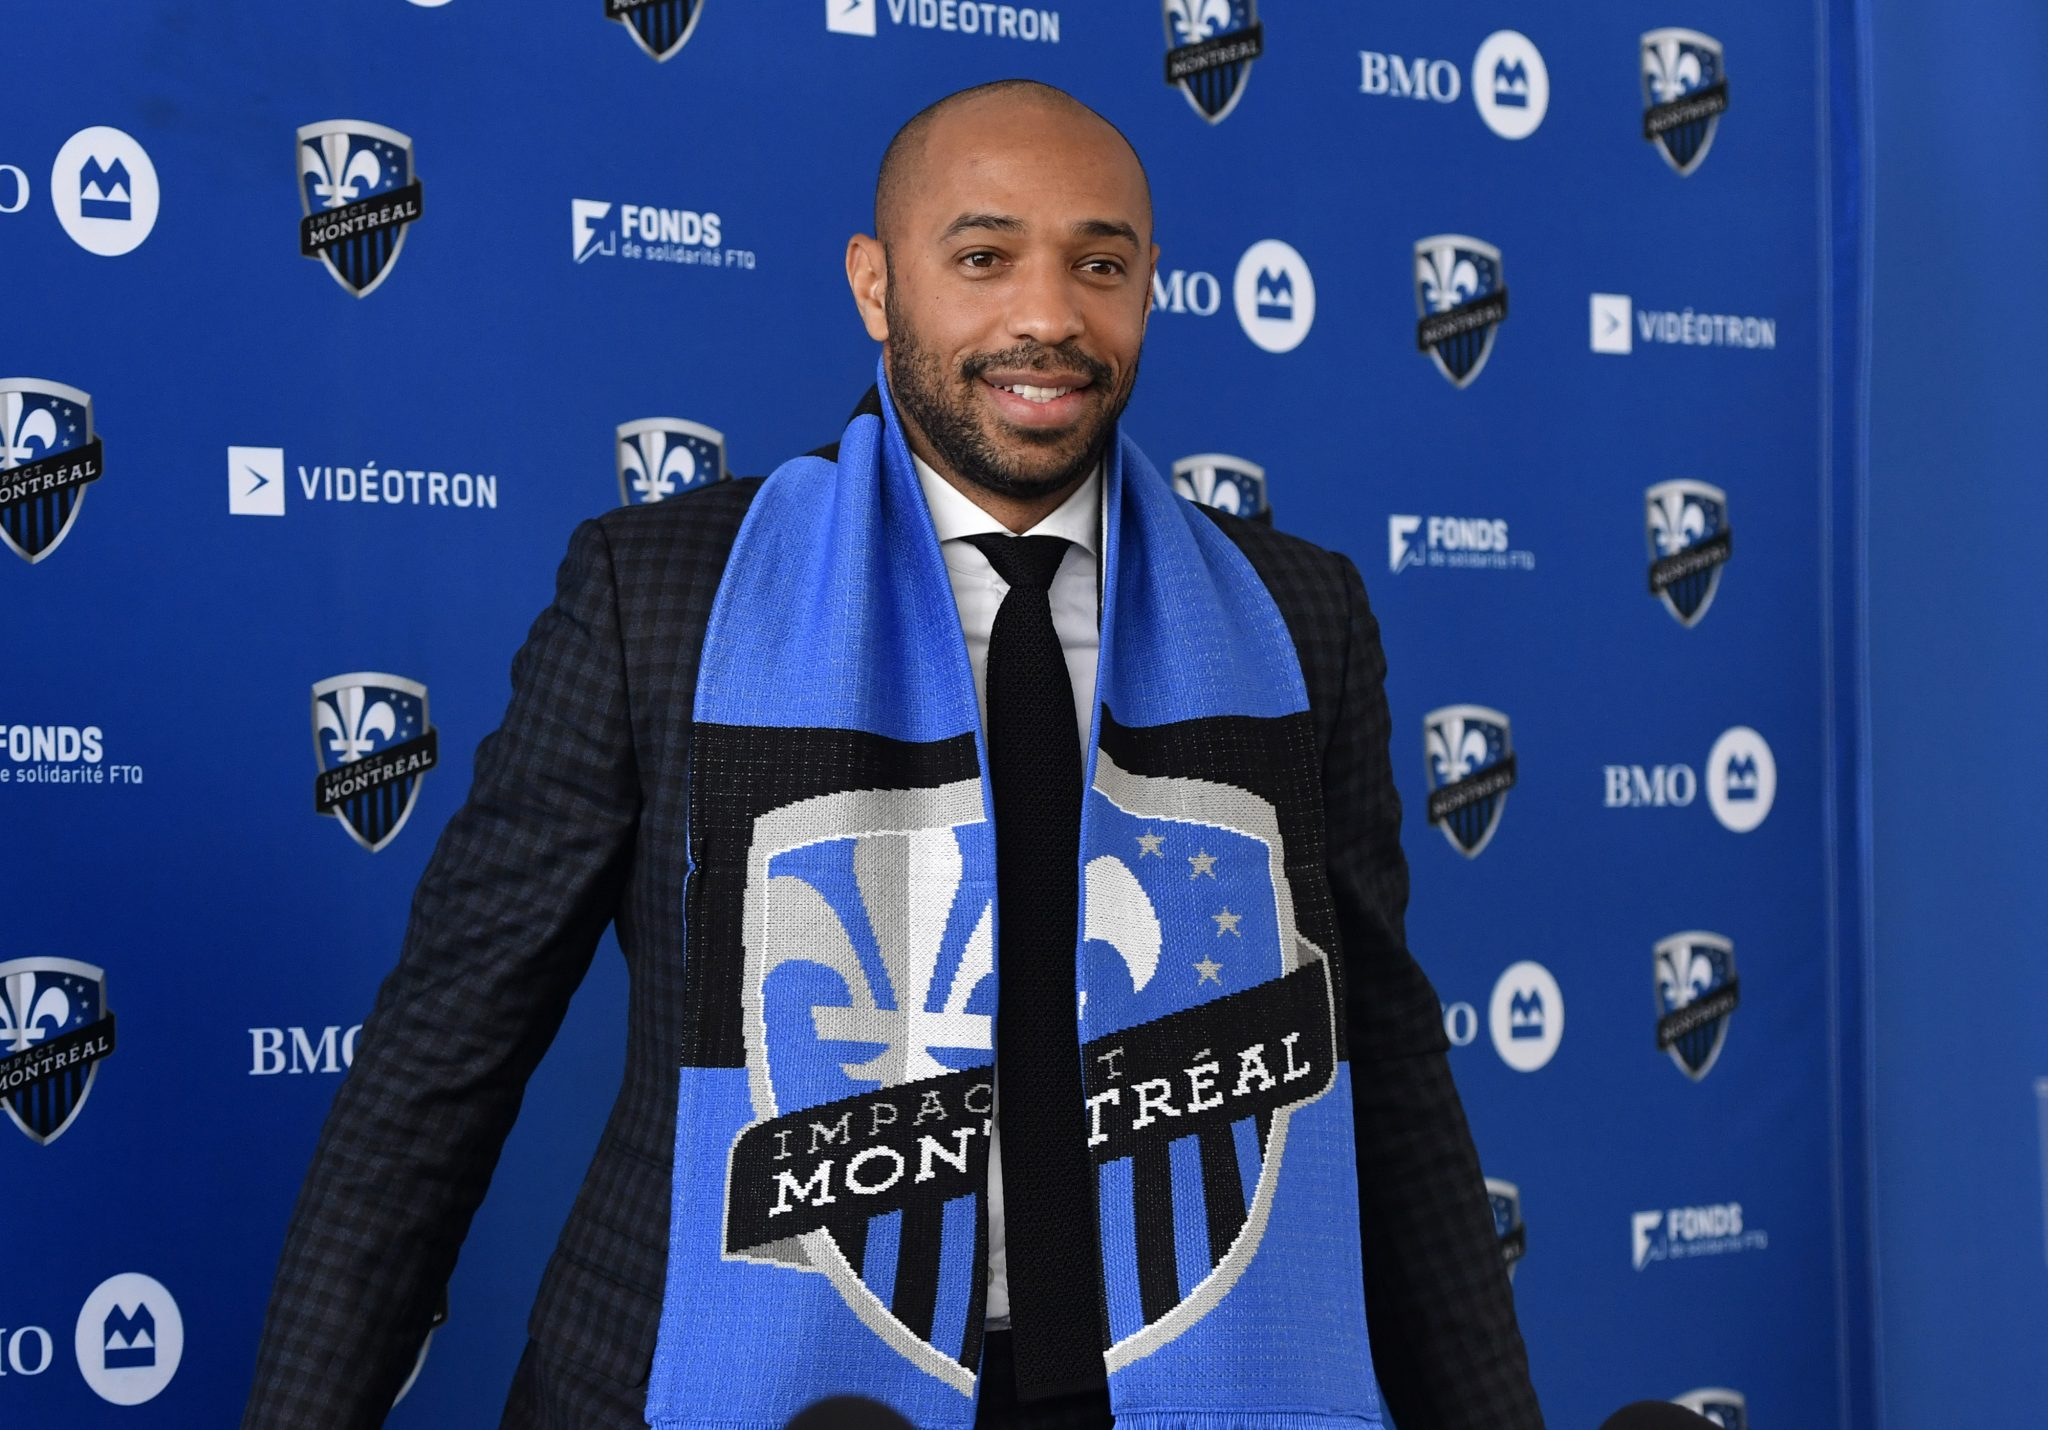 Thierry Henry returns to management with Montreal Impact after Monaco failure